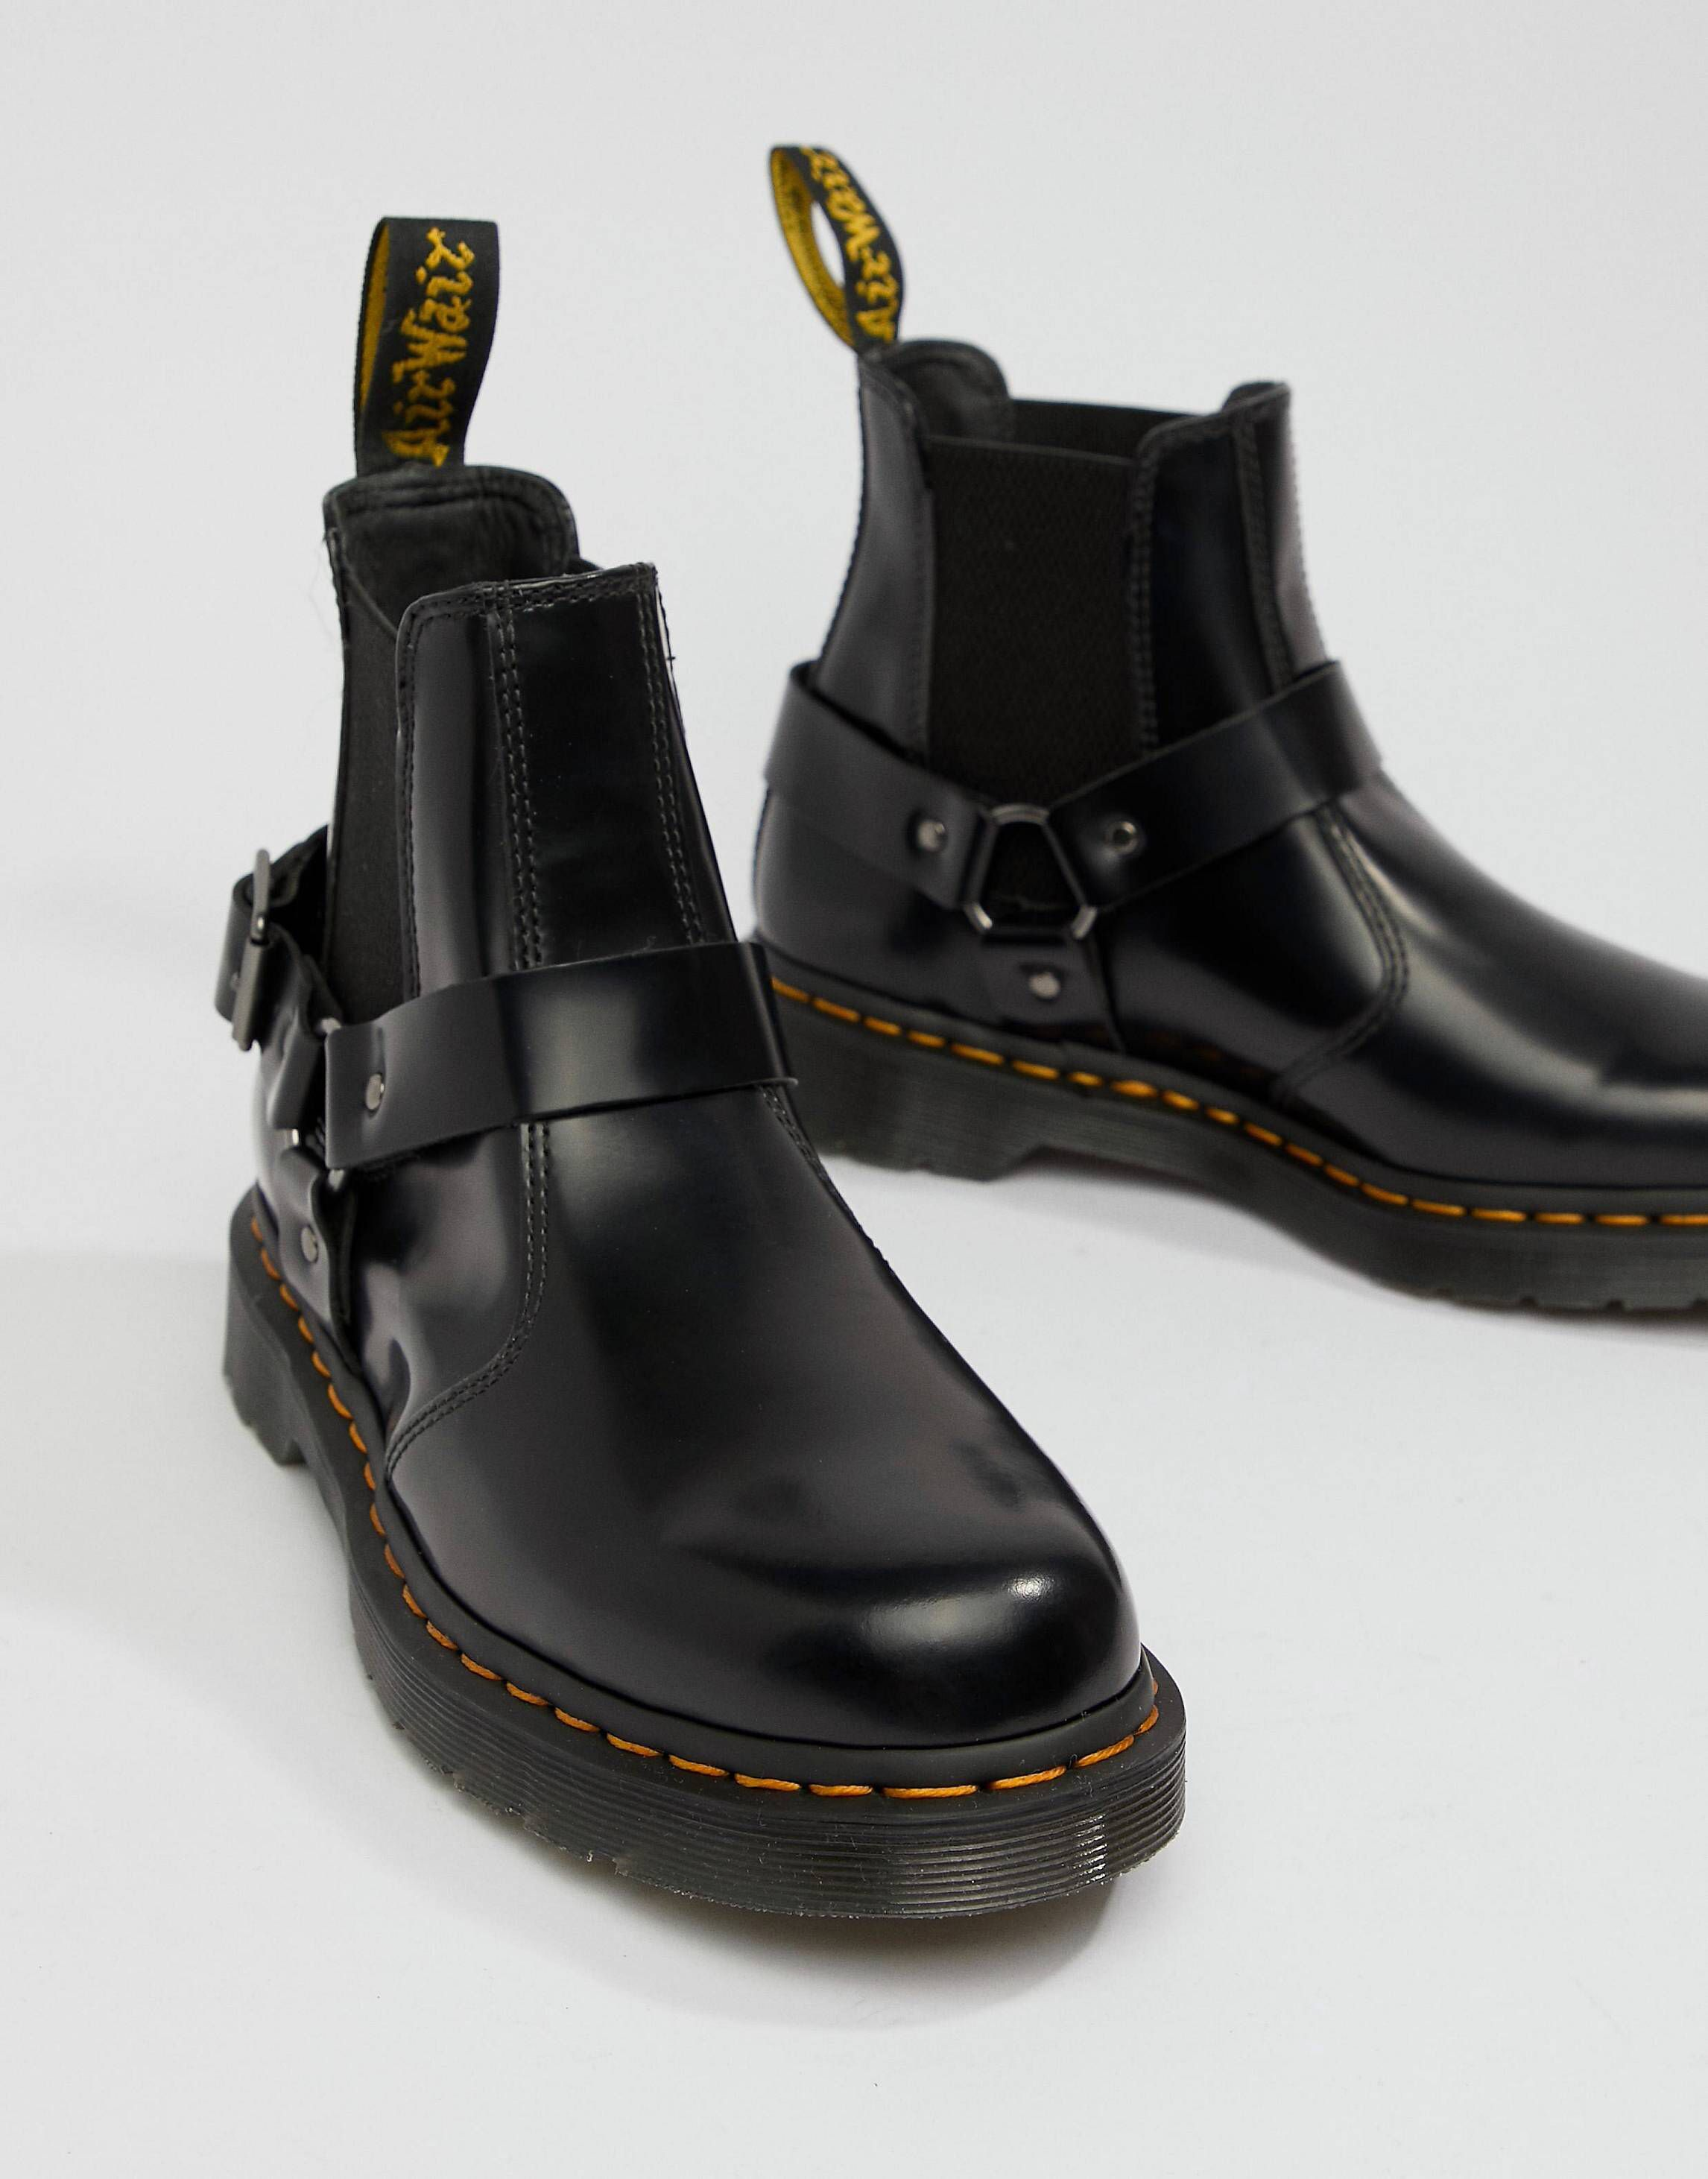 daf3e49dff3 Dr Martens Wincox chelsea boots in black | October Saves & Faves ...